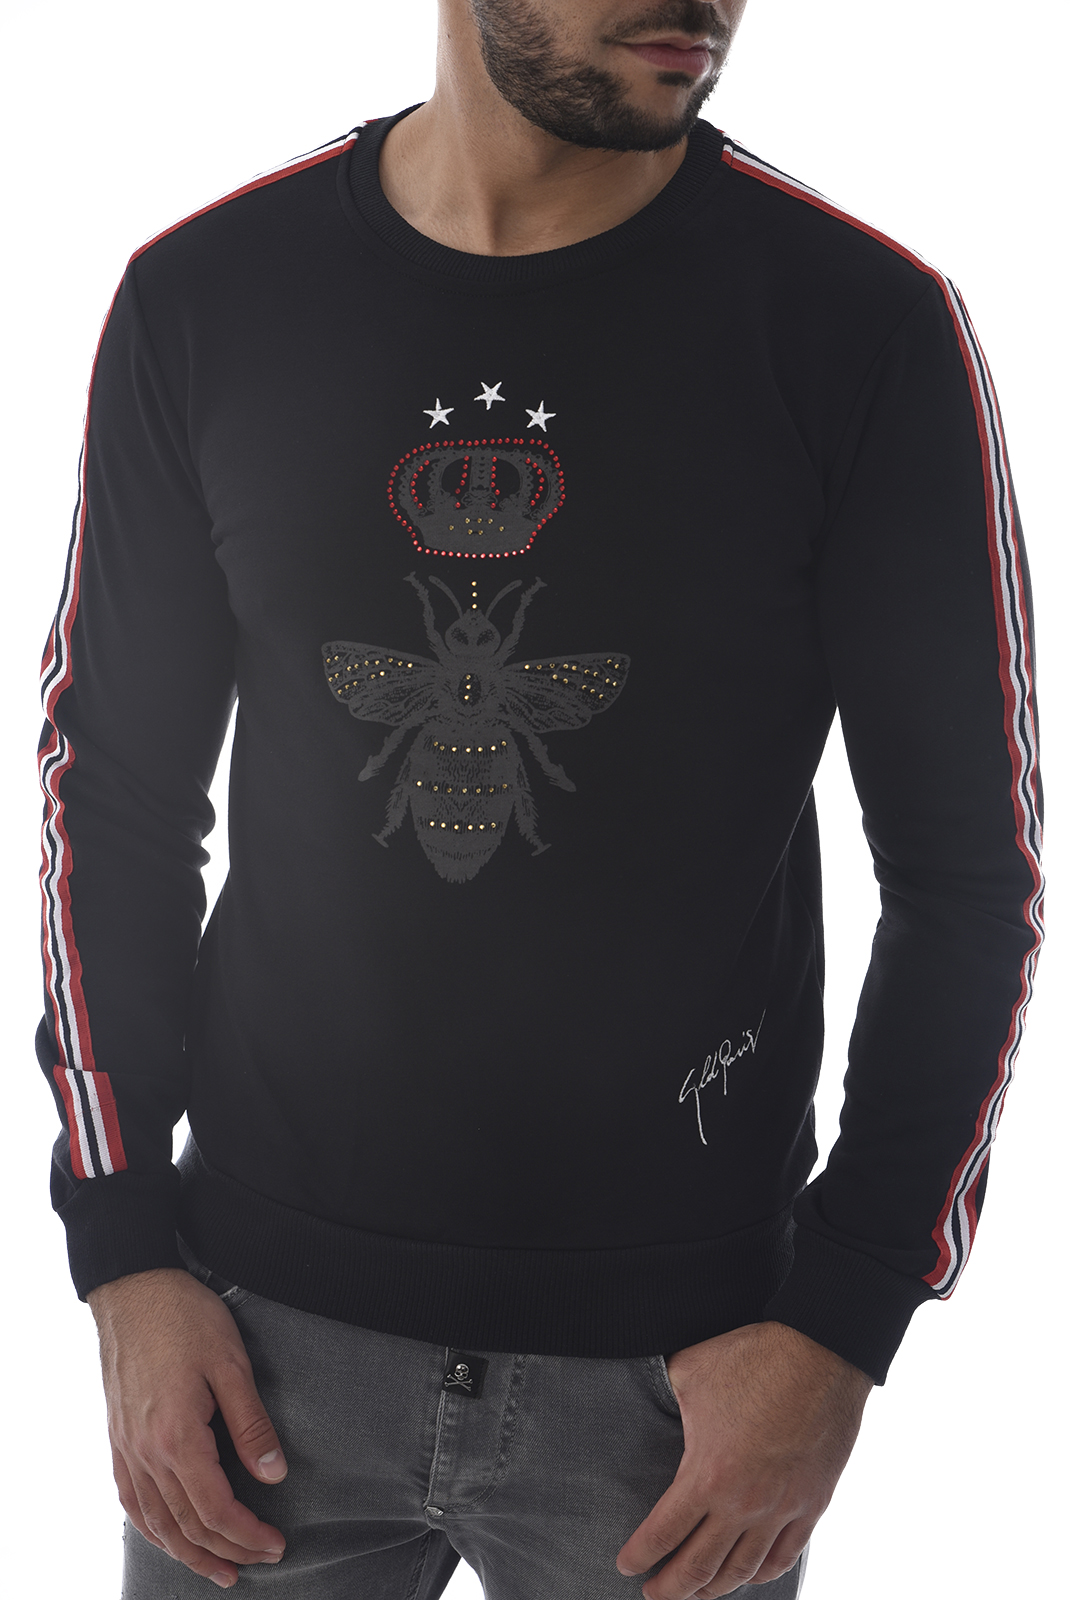 Sweatshirts  Goldenim paris 1006 NOIR